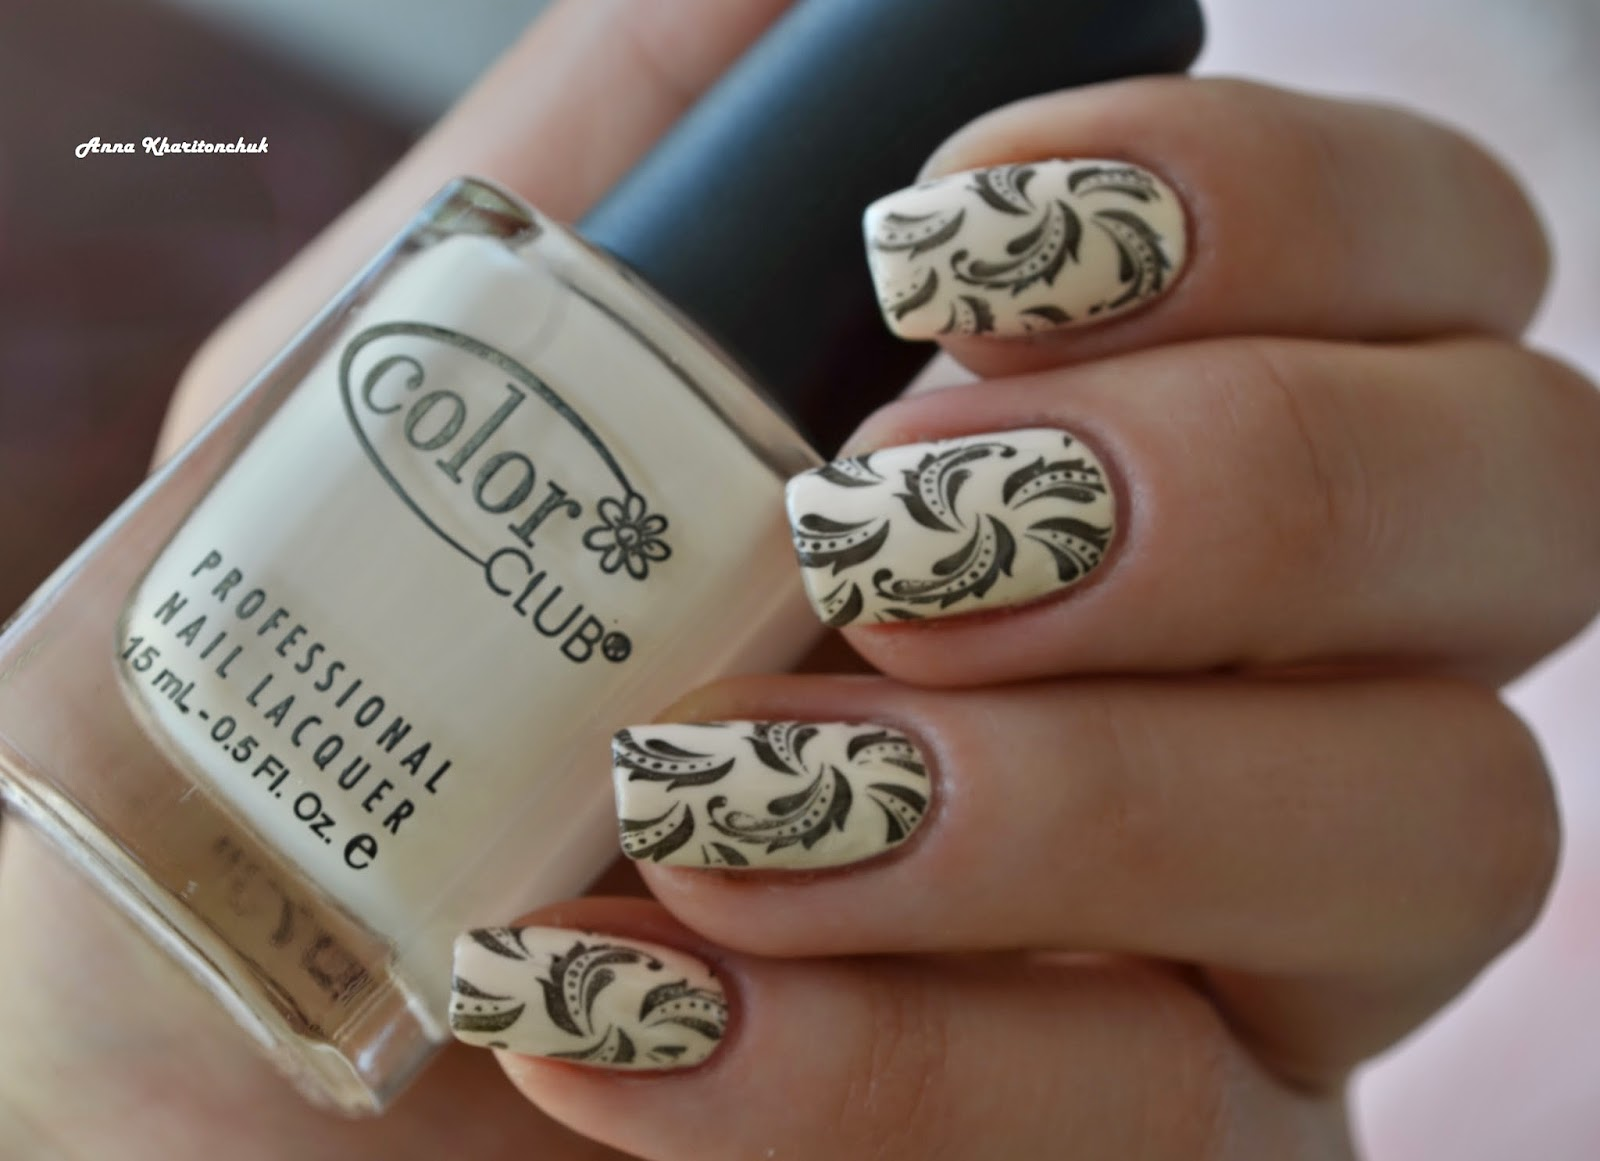 Color Club Poetic Hues 1007 и стемпинг Lesly LS-123